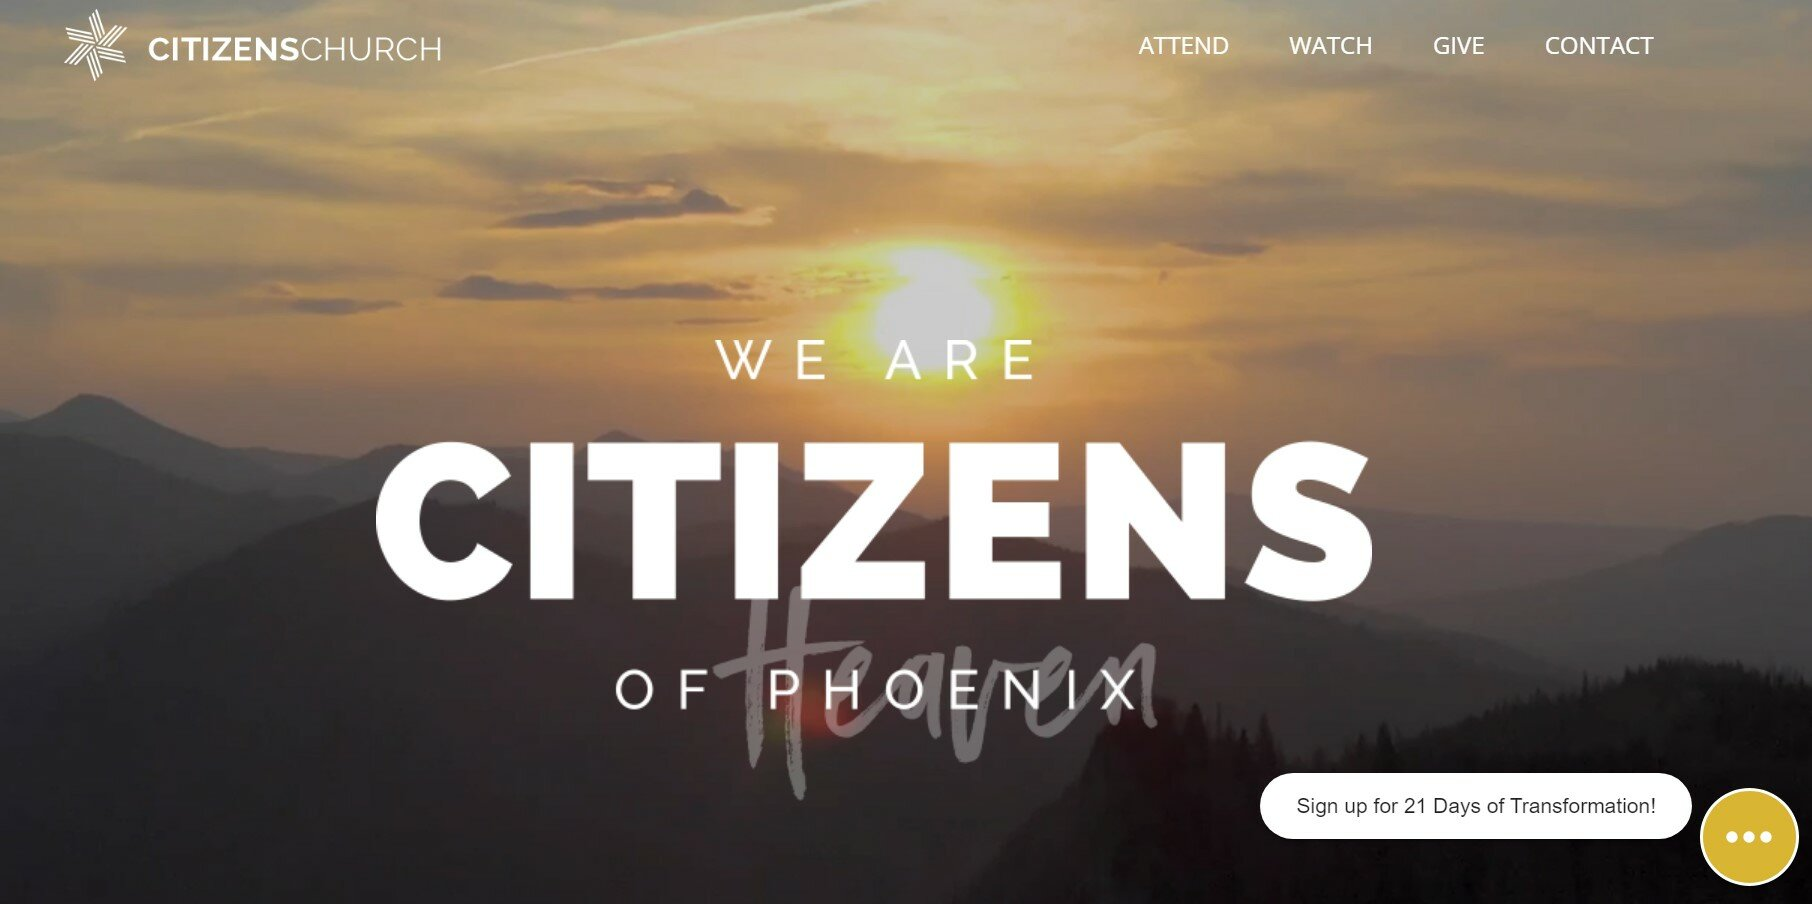 Citizens Church has one of our favorite church websites.